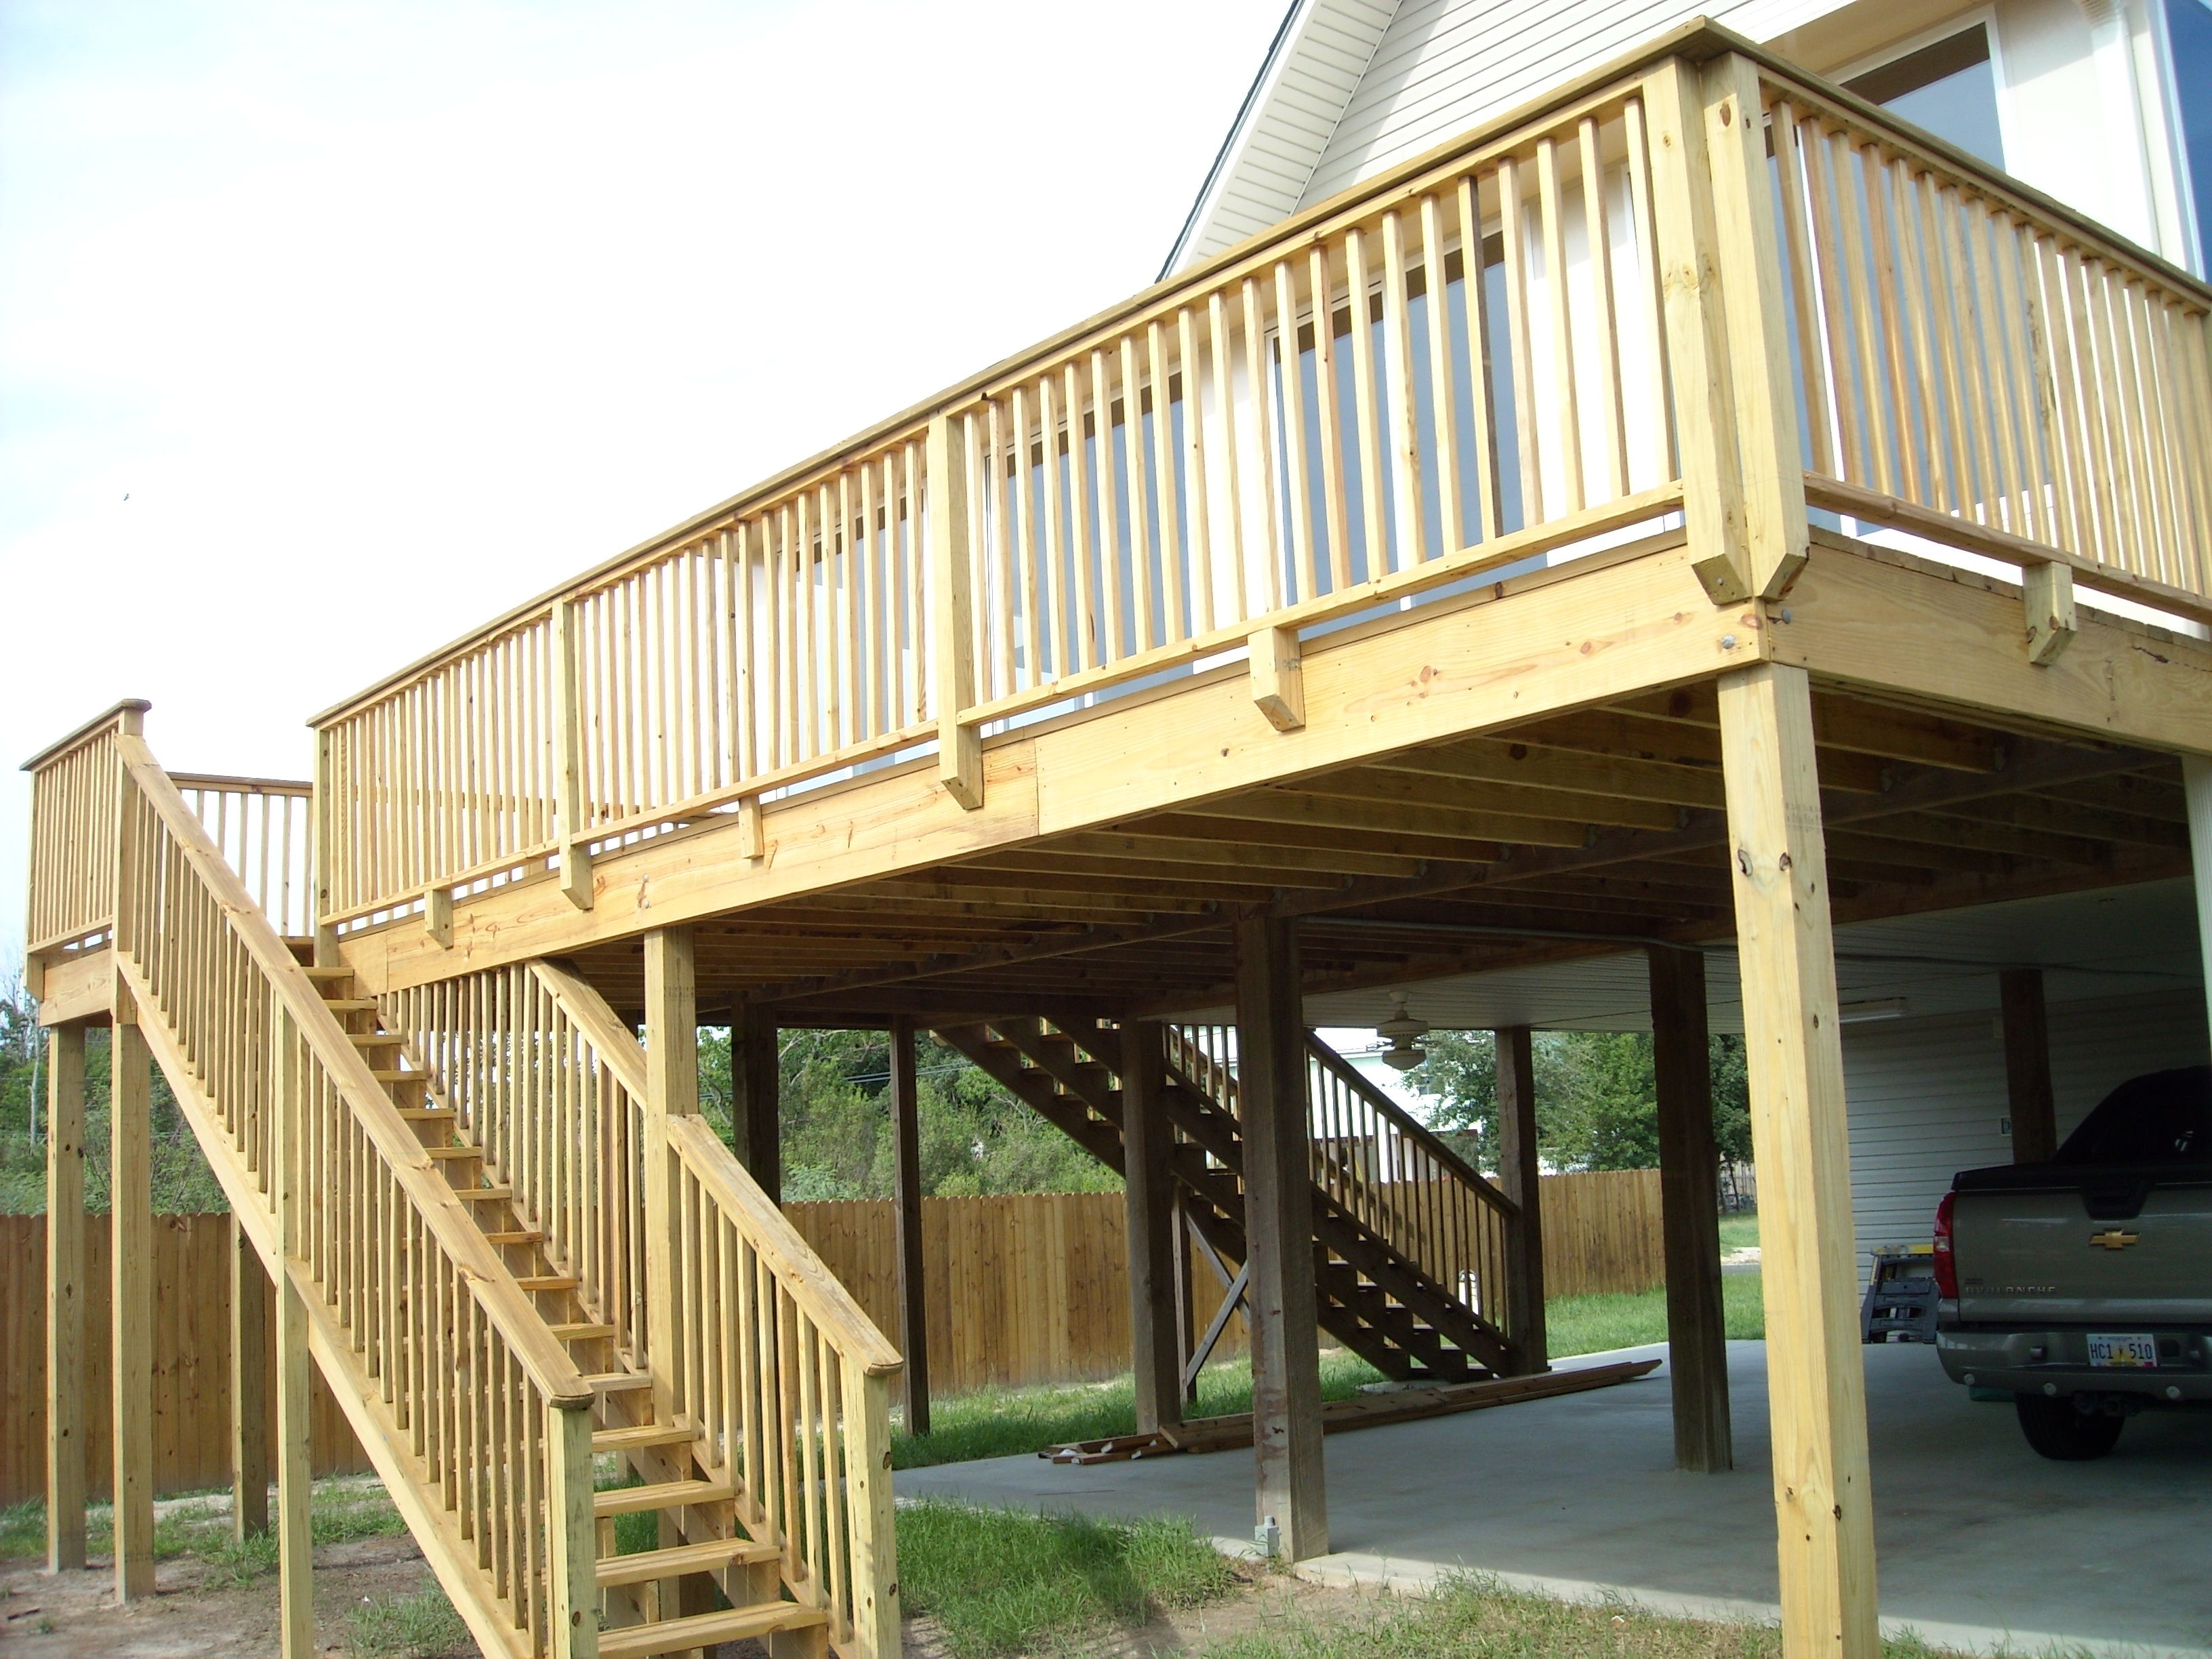 Image Of: Elevated Deck Plans And Ideas